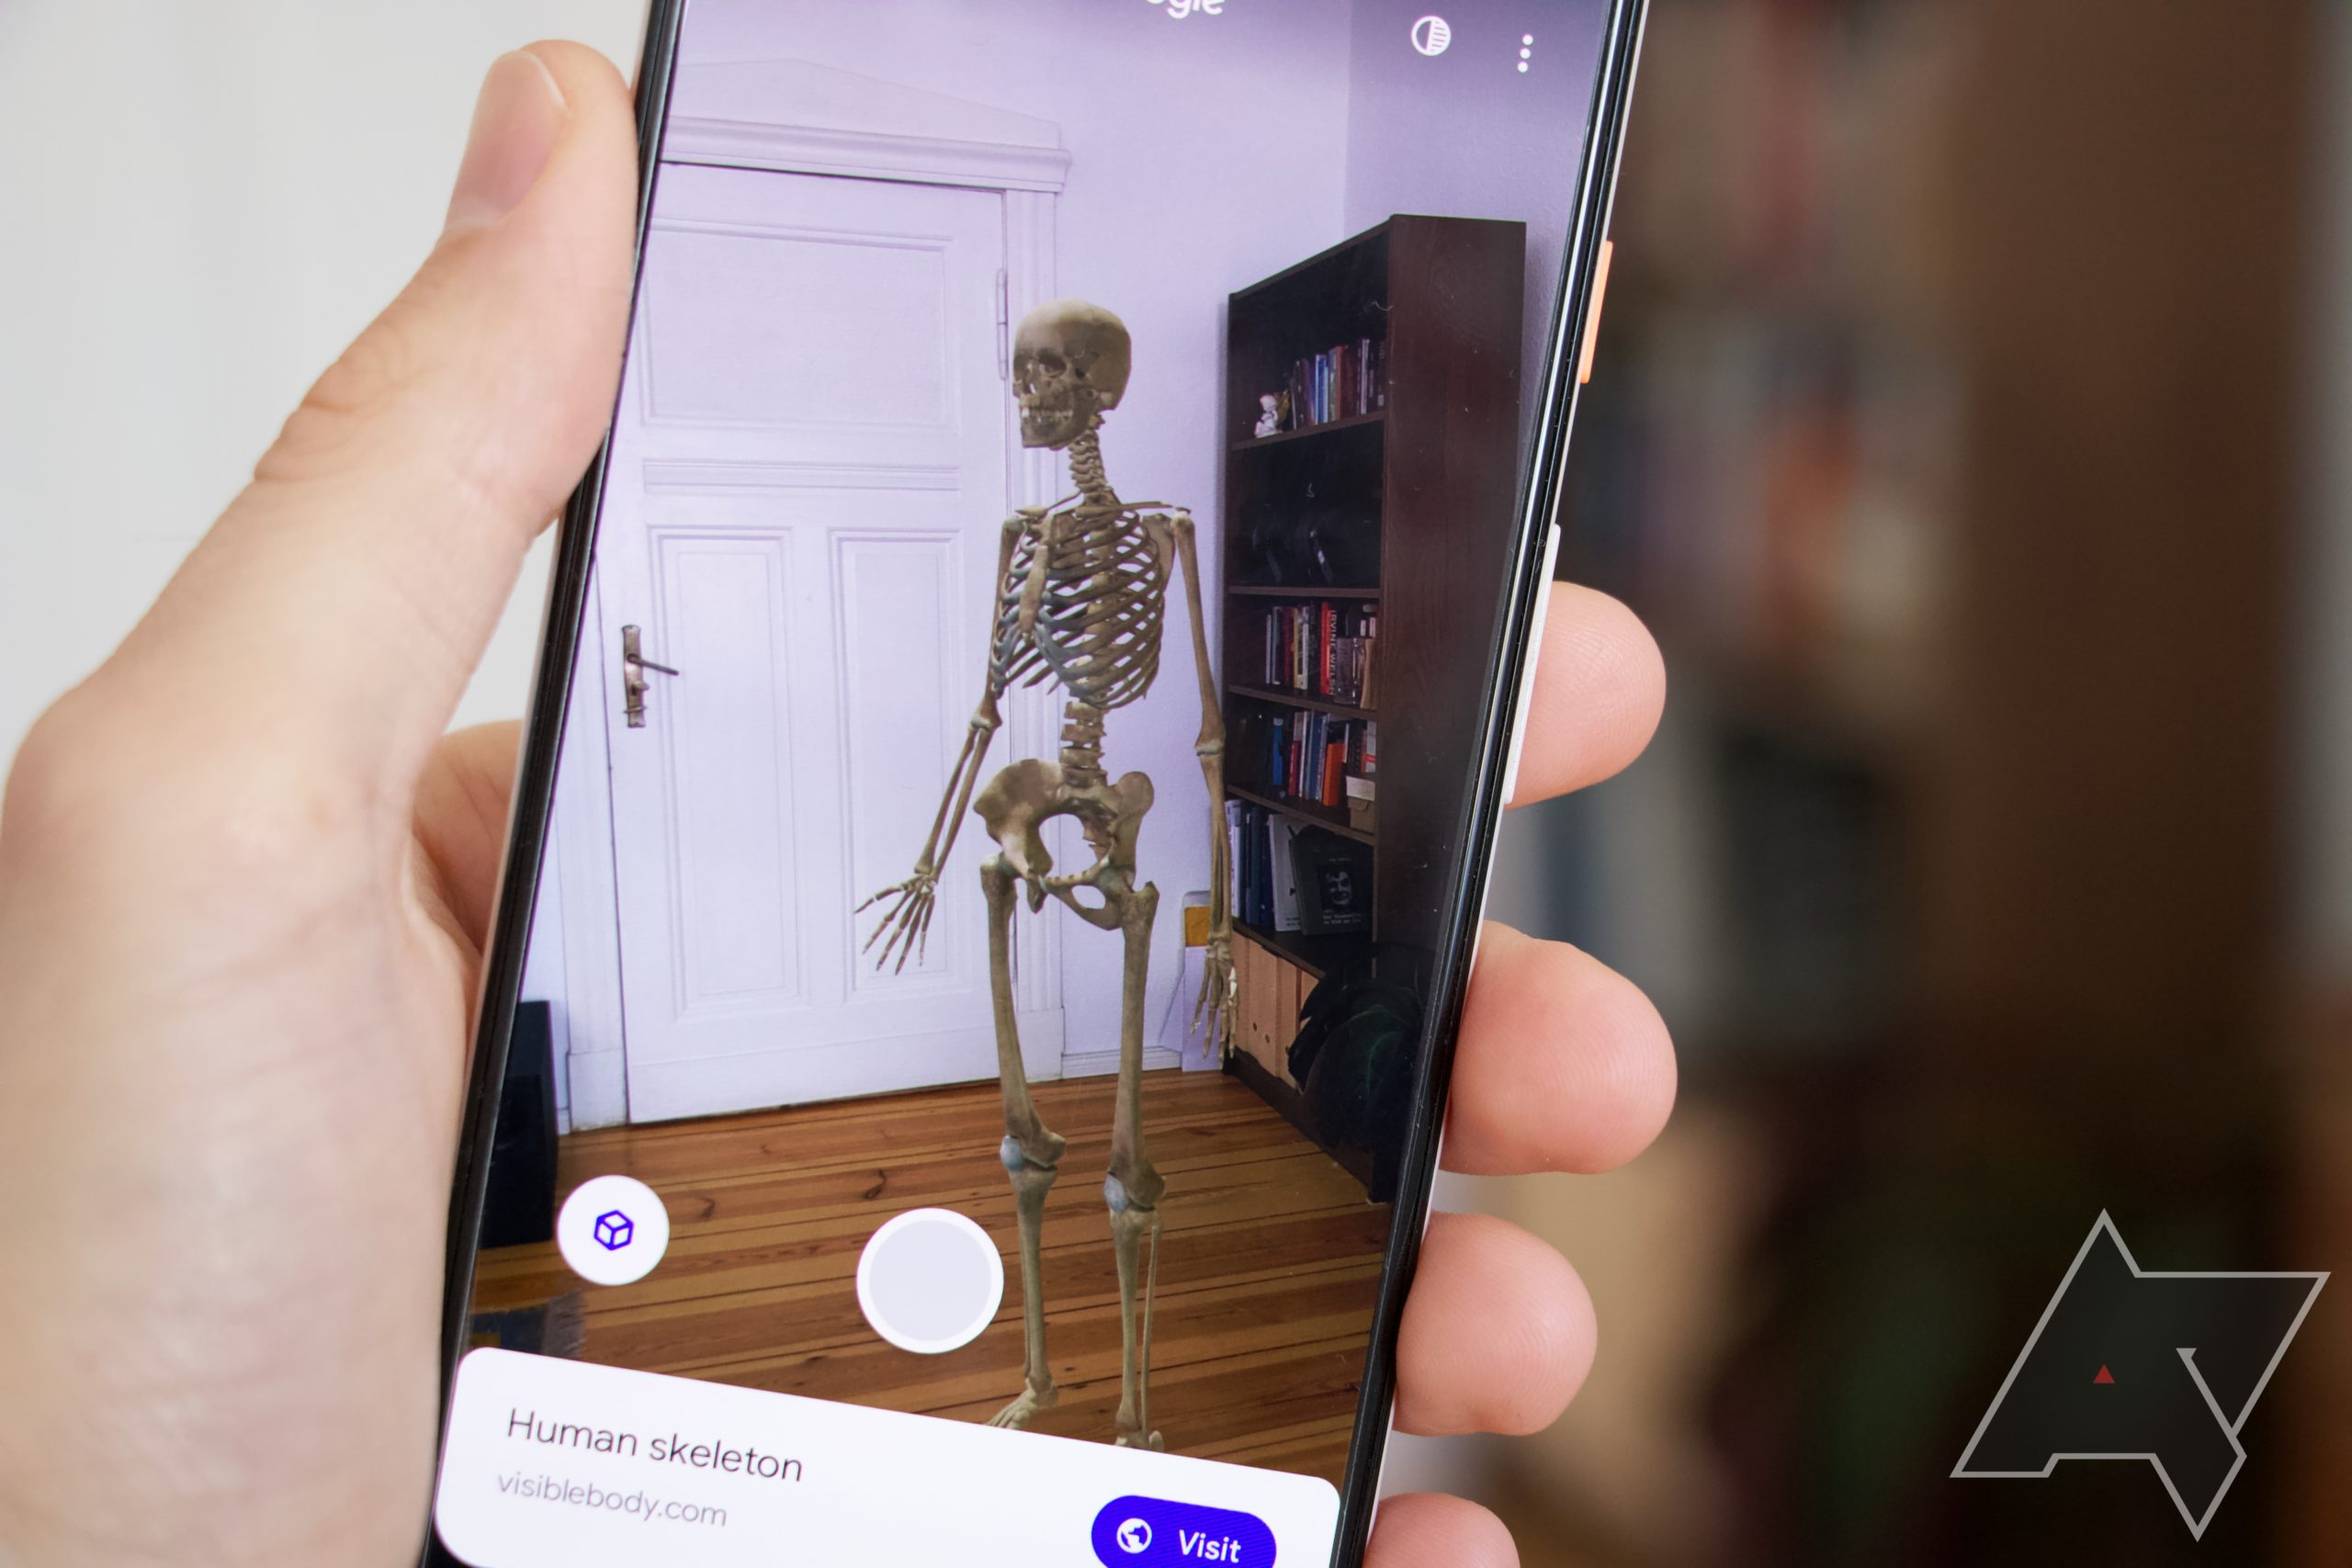 The Poco X2 and 20 other devices now support AR objects in Google Search